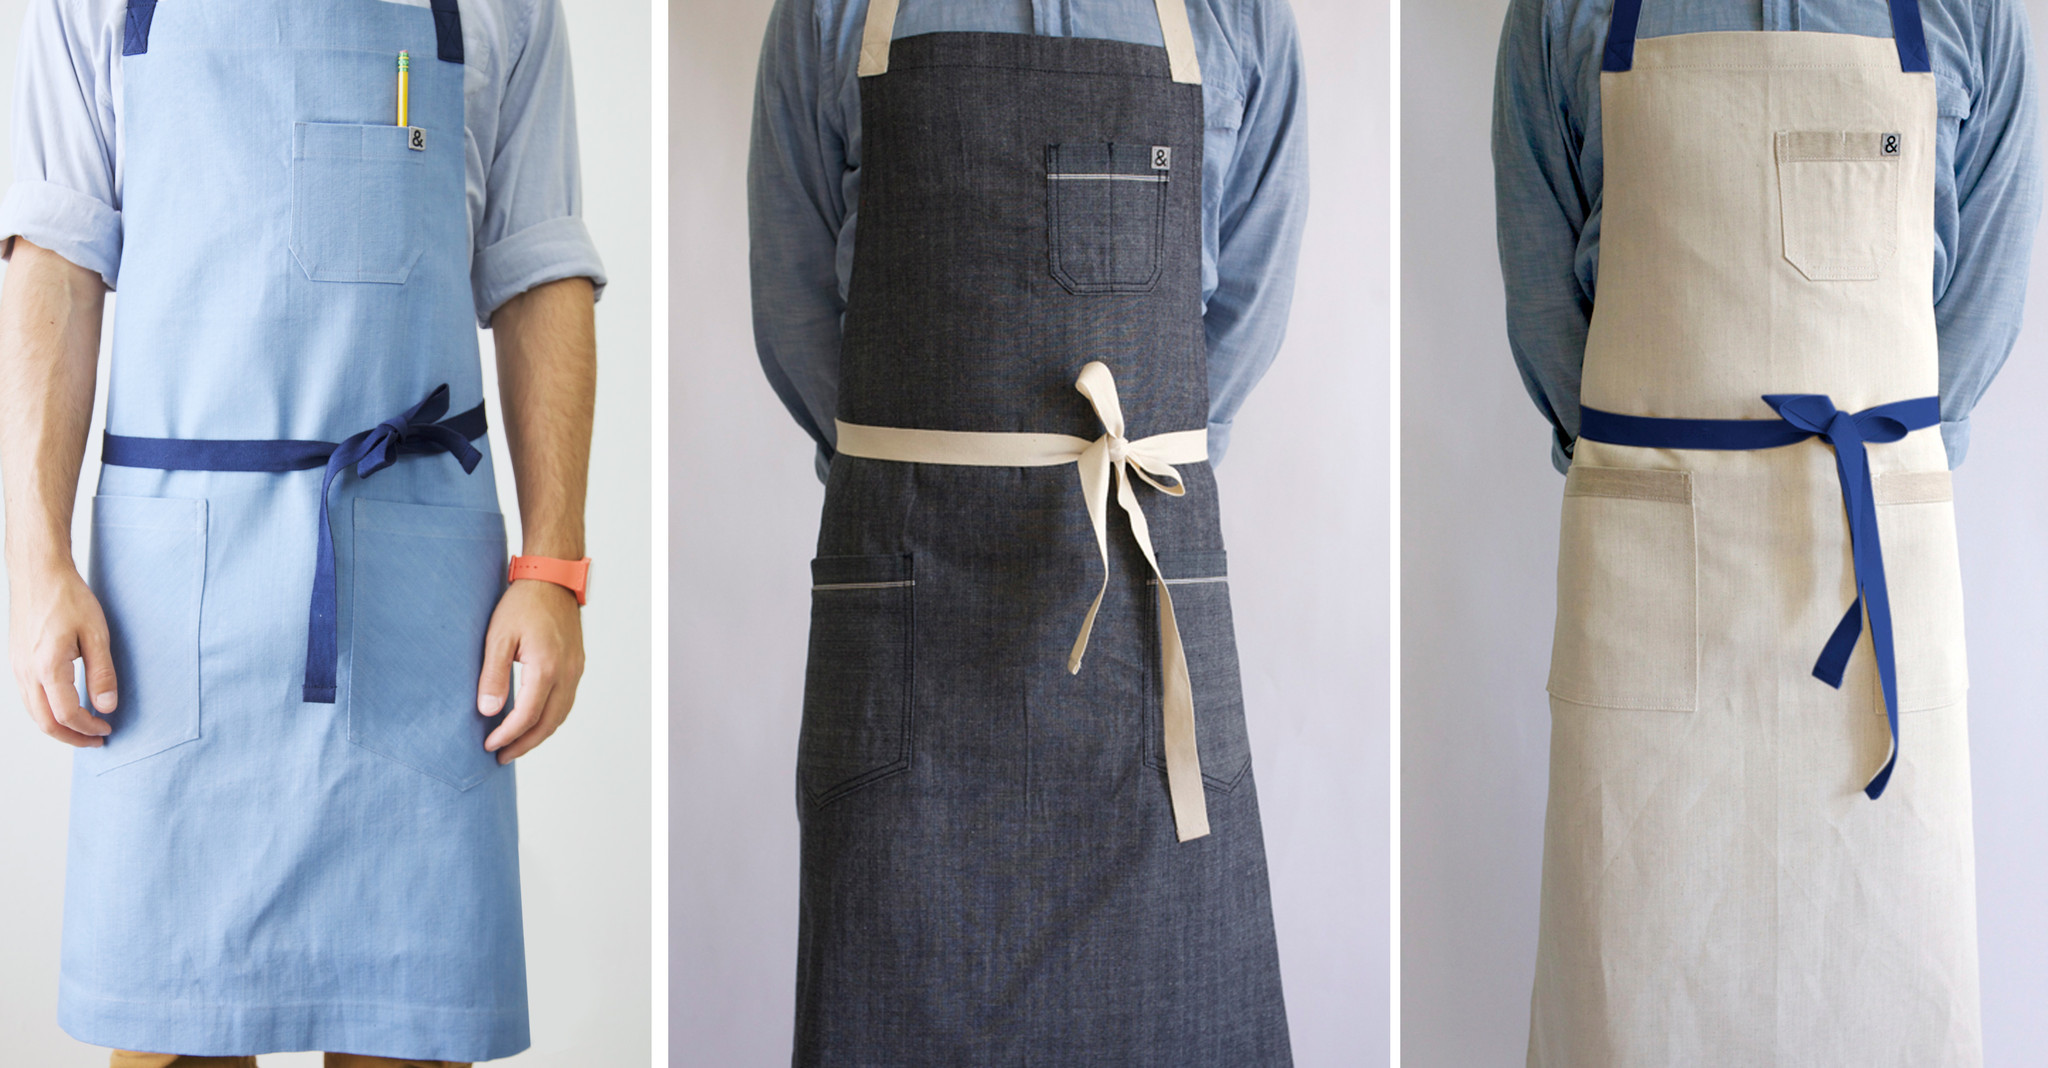 For Dads who cook: An apron he'll really use